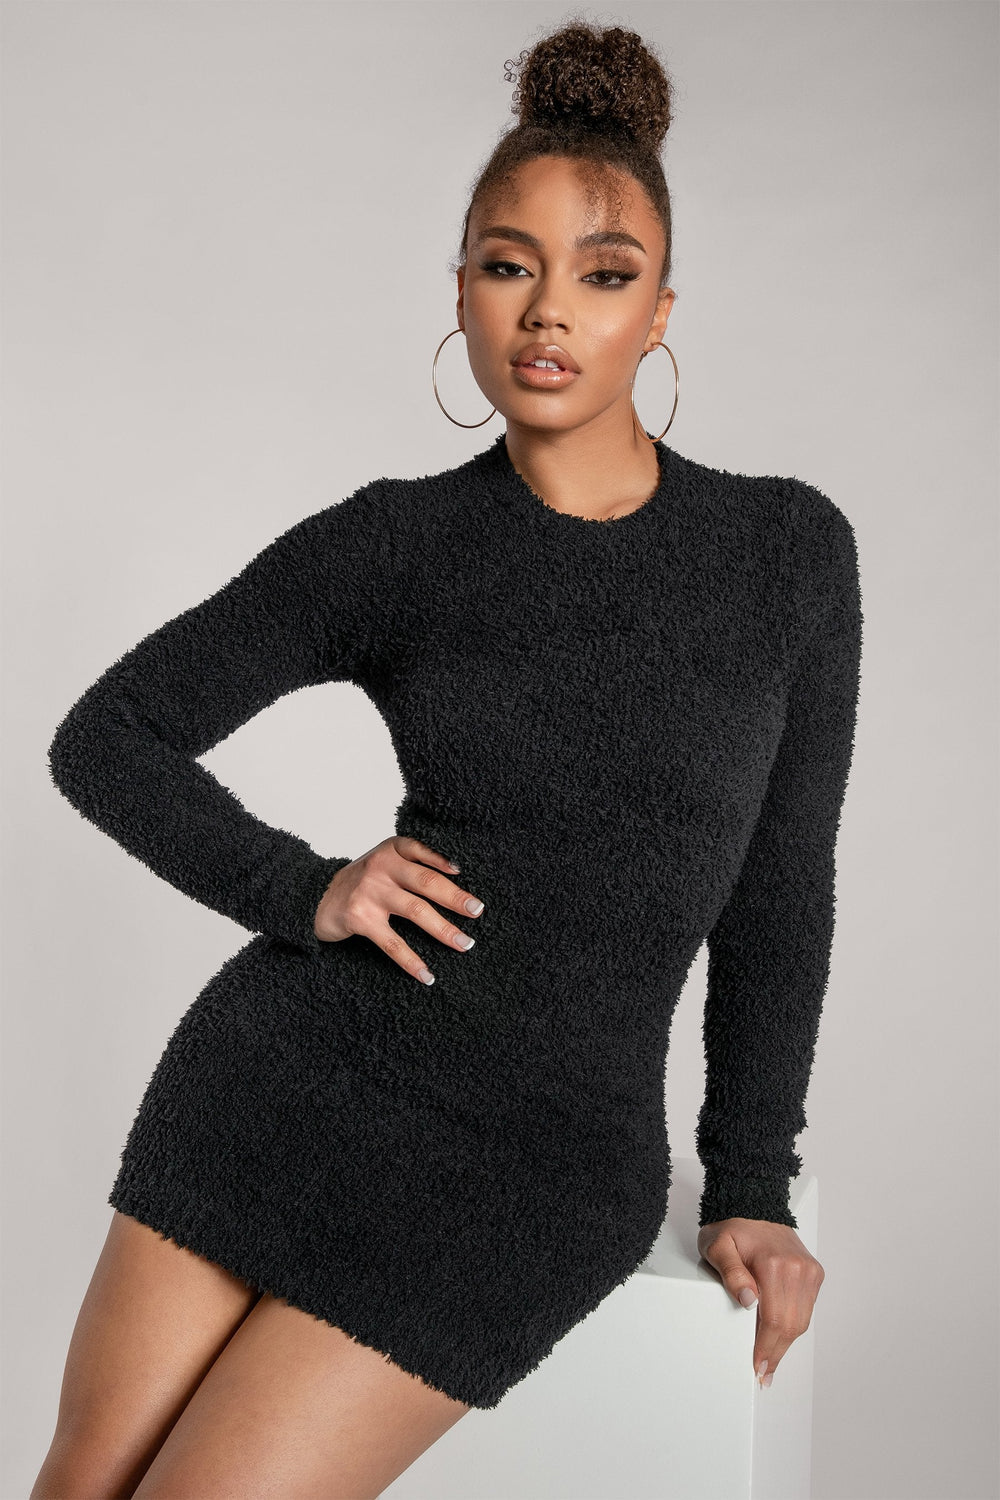 Lorin Popcorn Cut Out Back Long Sleeve Mini Dress - Black - MESHKI ?id=15939404267595